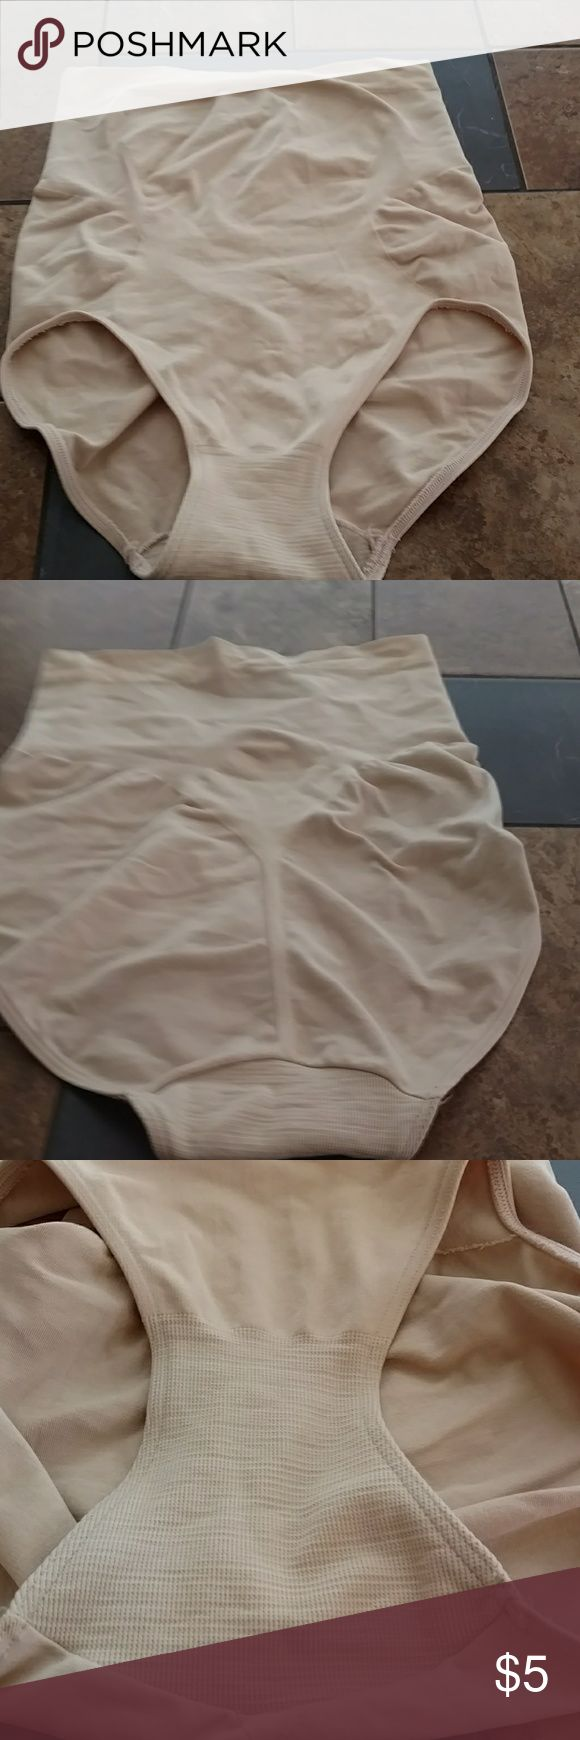 S/M Nude High Waist Shapewear 83% Nylon/16% Spandex/1% Cotton. Nude high waist shapewear underwear. Wore one time with underwear underneath garment (wanted all the hold I could get). Pictures of interior and exterior of gusset. No rips, tears or stains. Invisible Contours Intimates & Sleepwear Shapewear